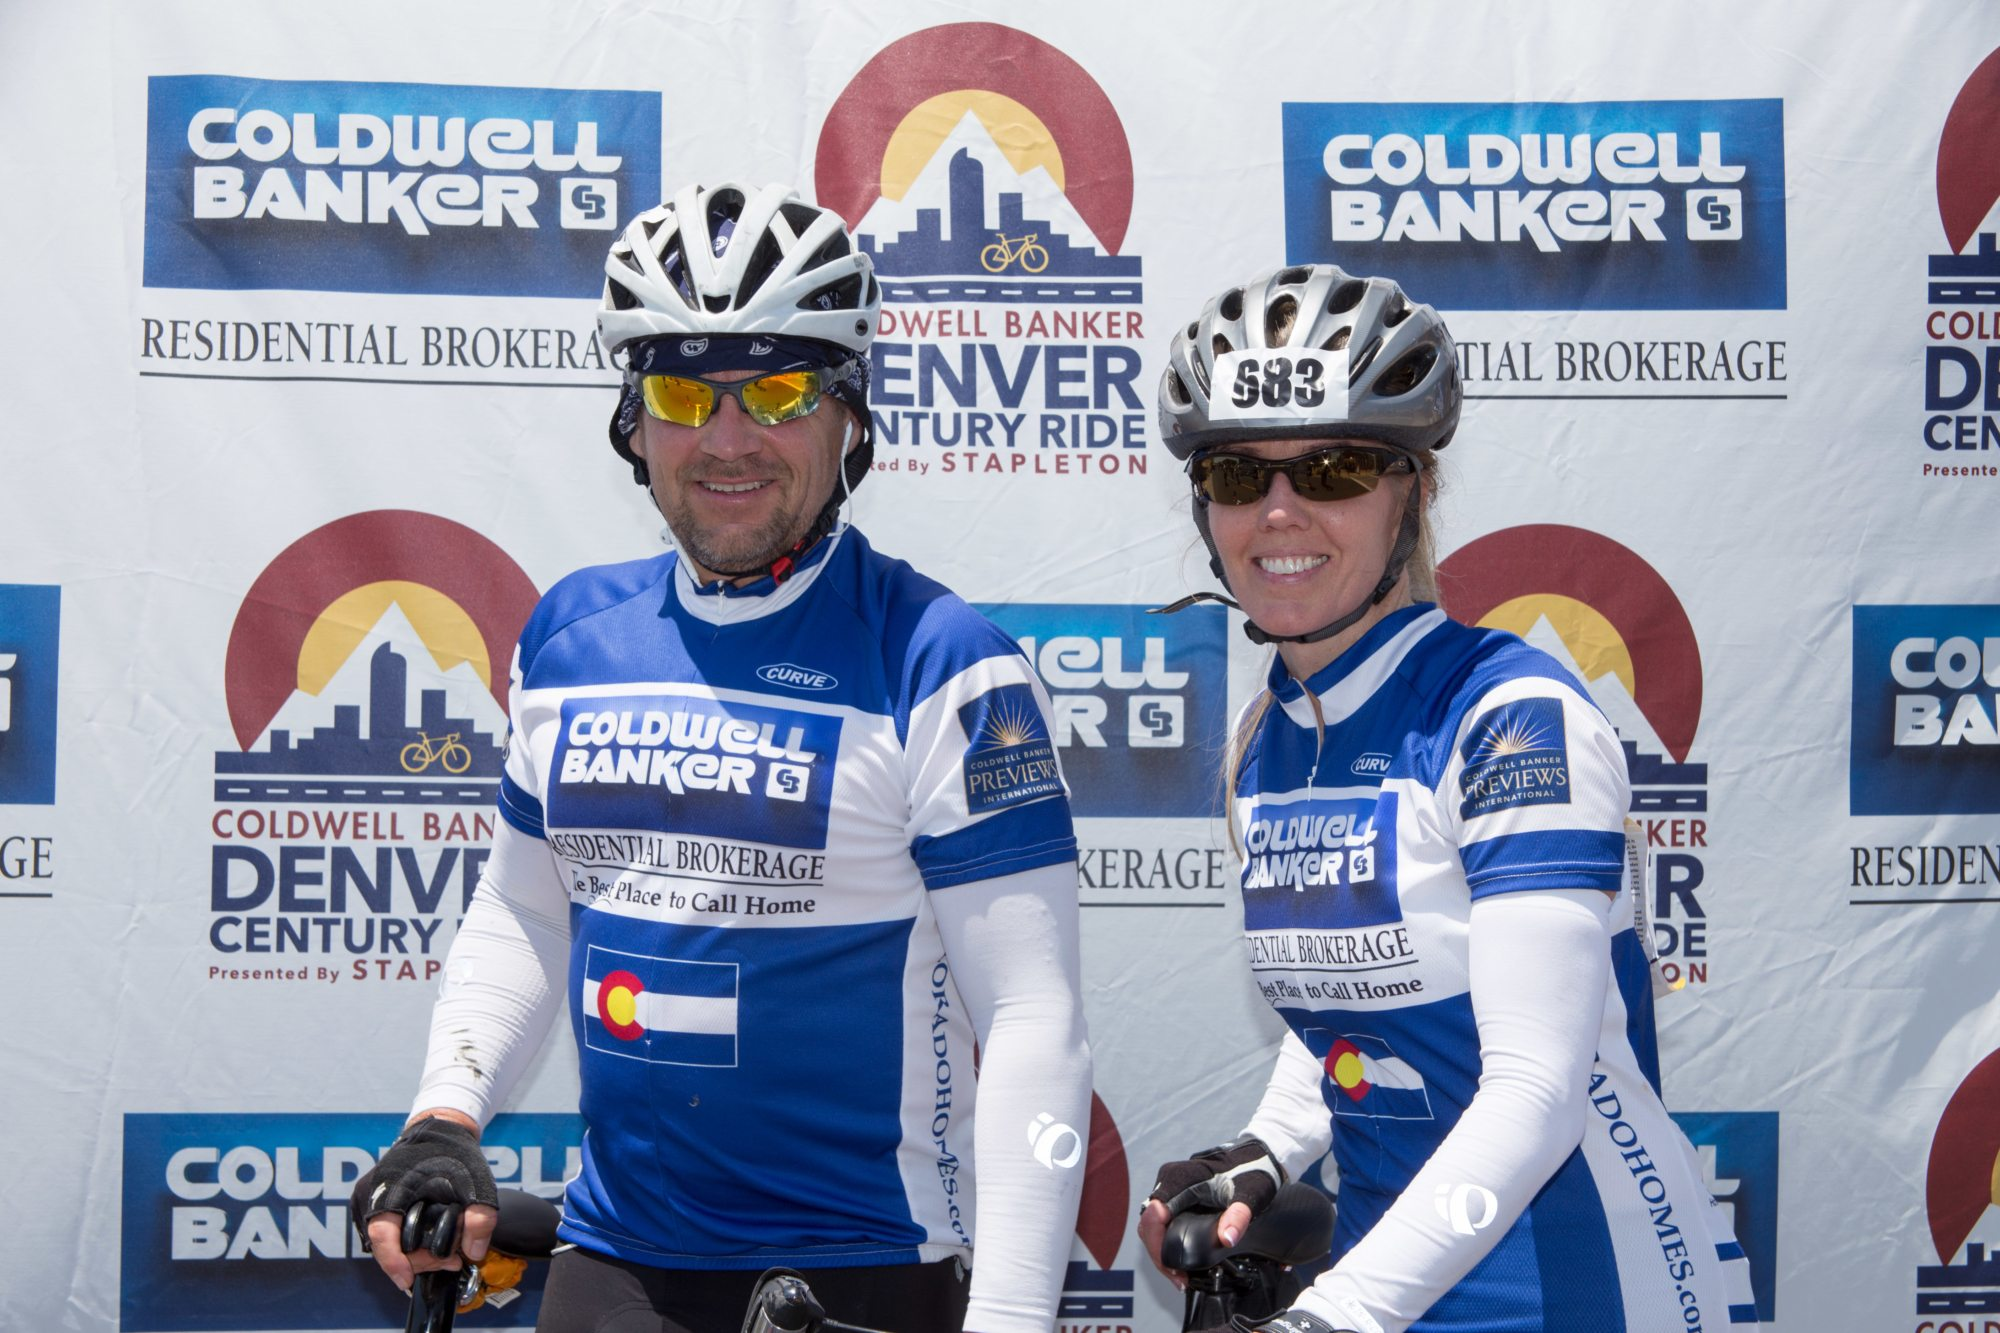 Coldwell Banker Denver Century Ride_0171